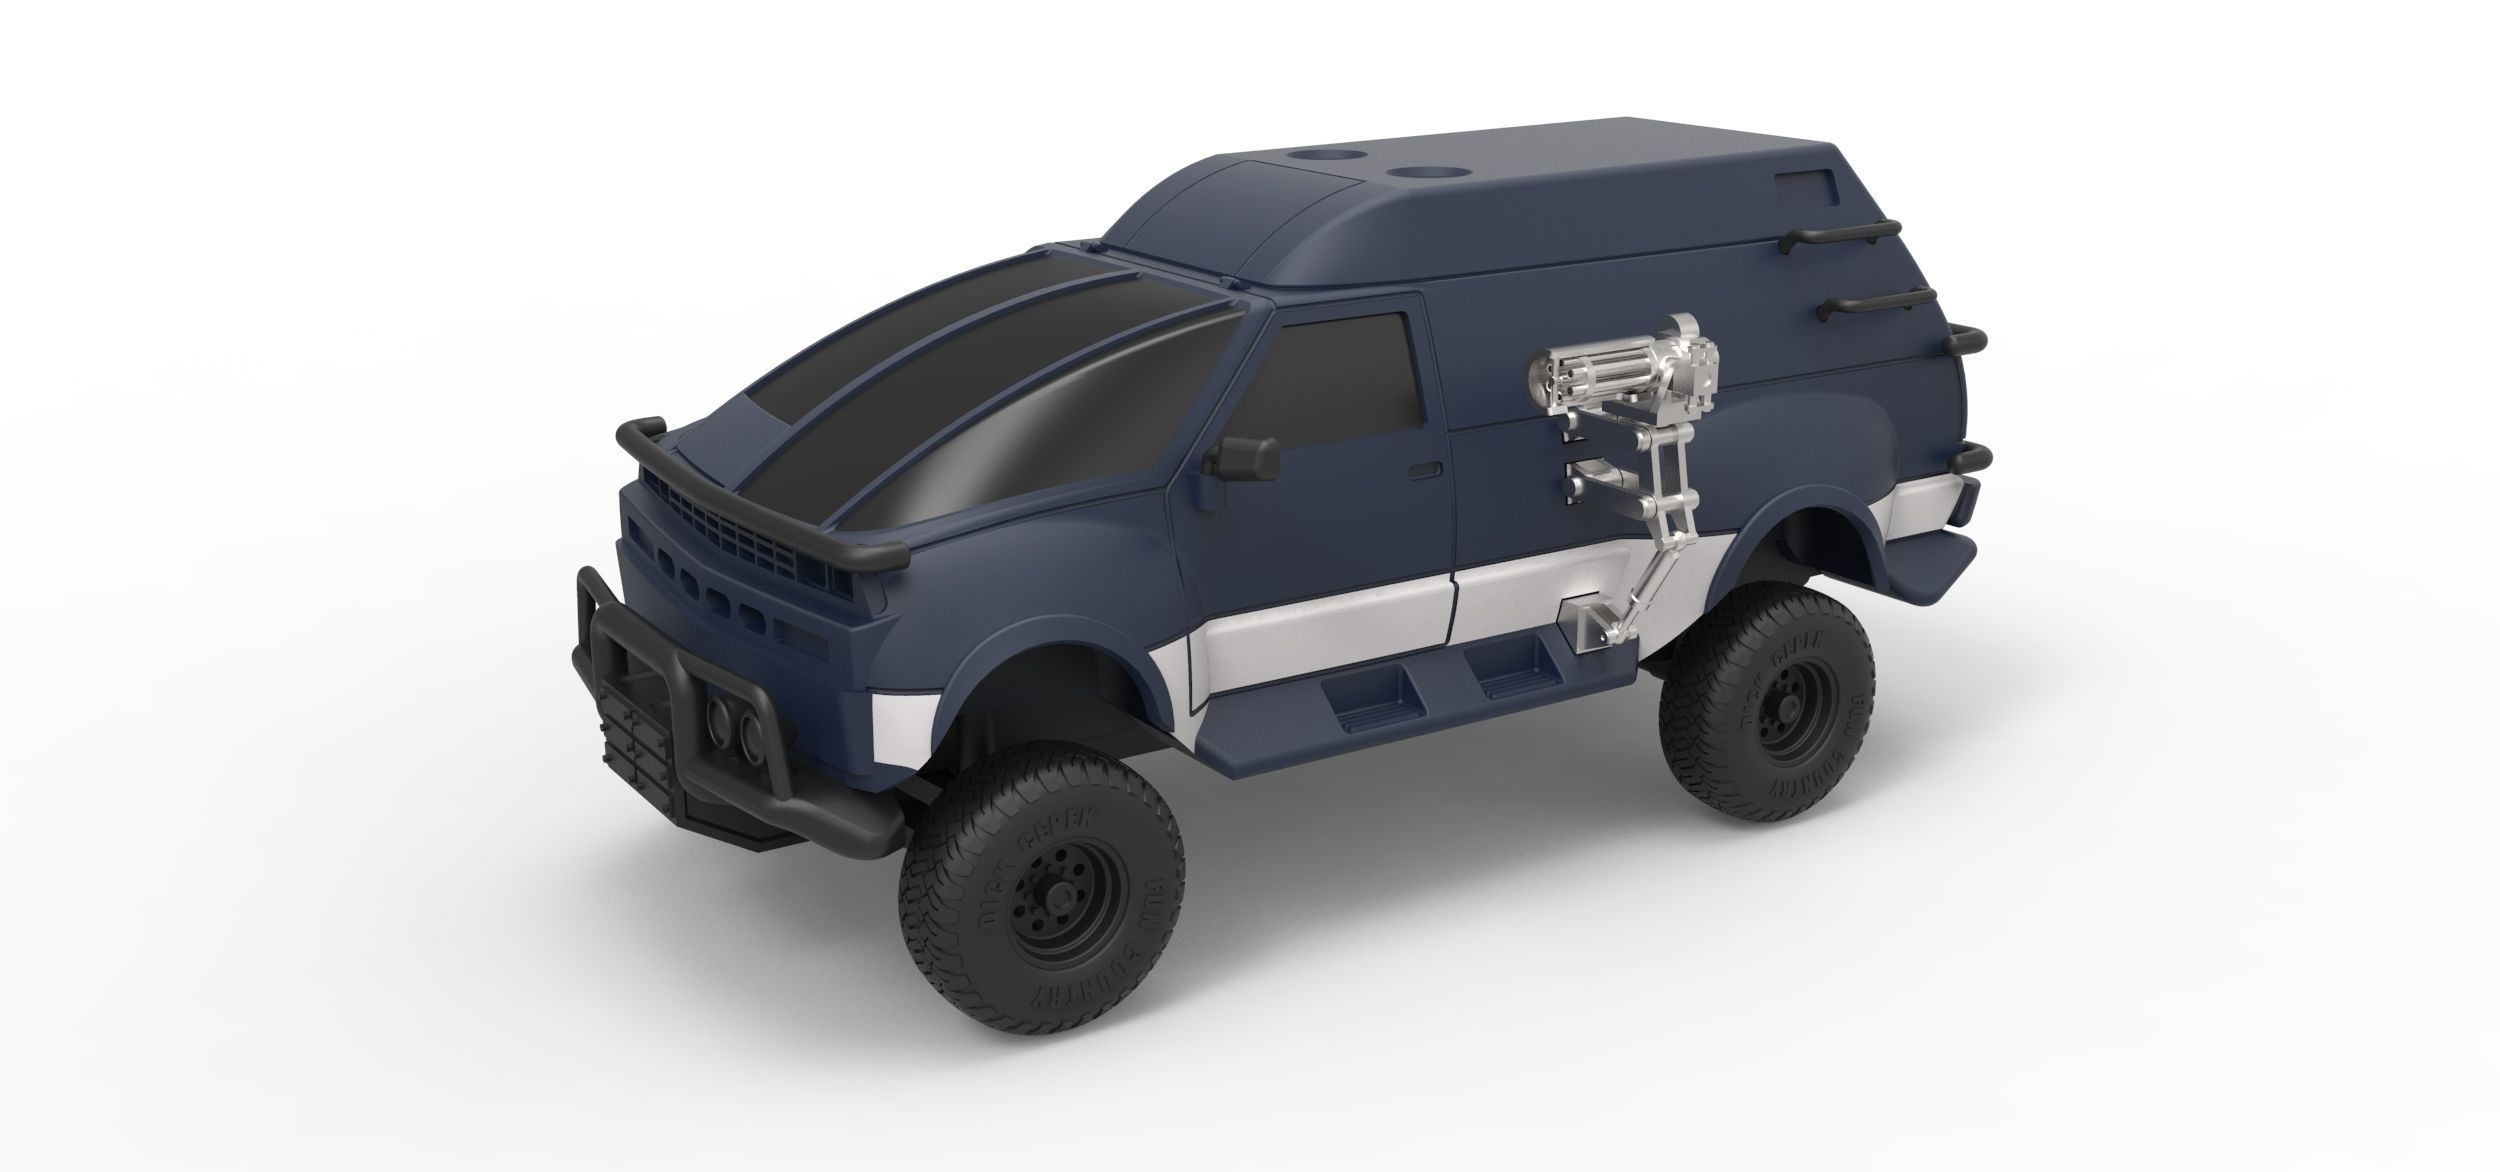 Diecast model RV from Hell from Tango and Cash Scale 1 to 24